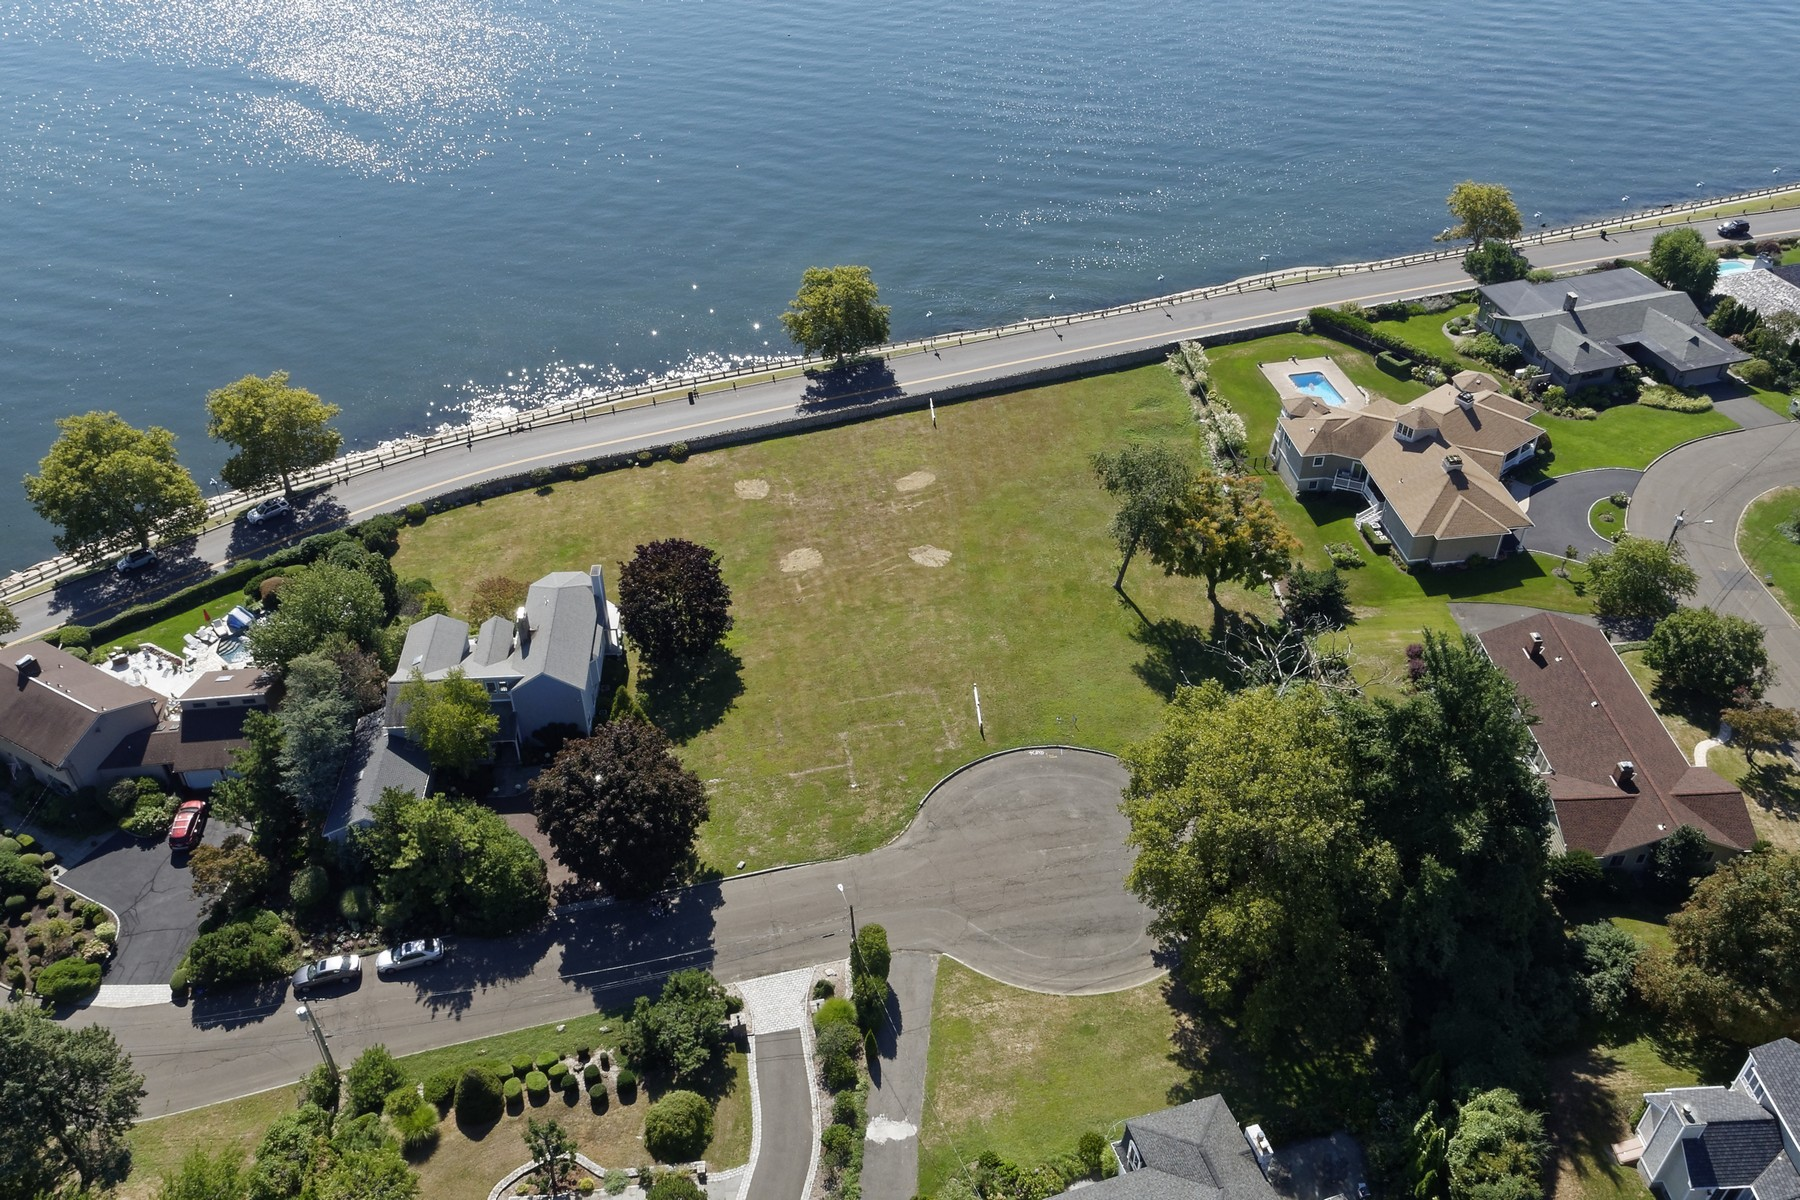 Maison unifamiliale pour l Vente à Amazing Opportunity to Build Your Waterfront Dream Home in St. Mary's by the Sea 69 Armitage Drive Bridgeport, Connecticut, 06605 États-Unis